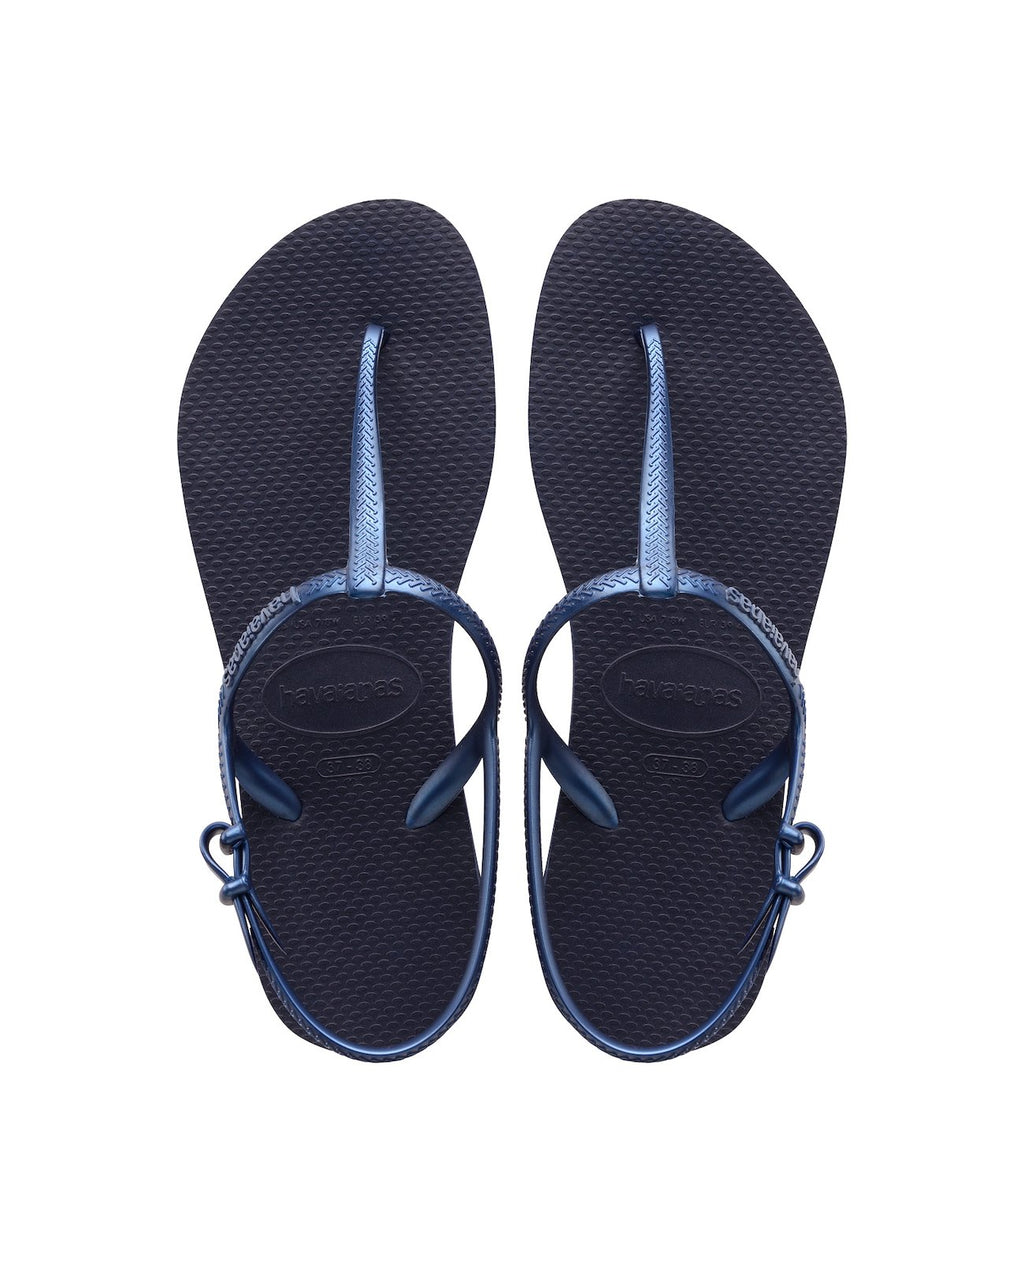 HAVAIANAS - WOMEN SANDALS - HAVAIANAS FREEDOM - The BCode